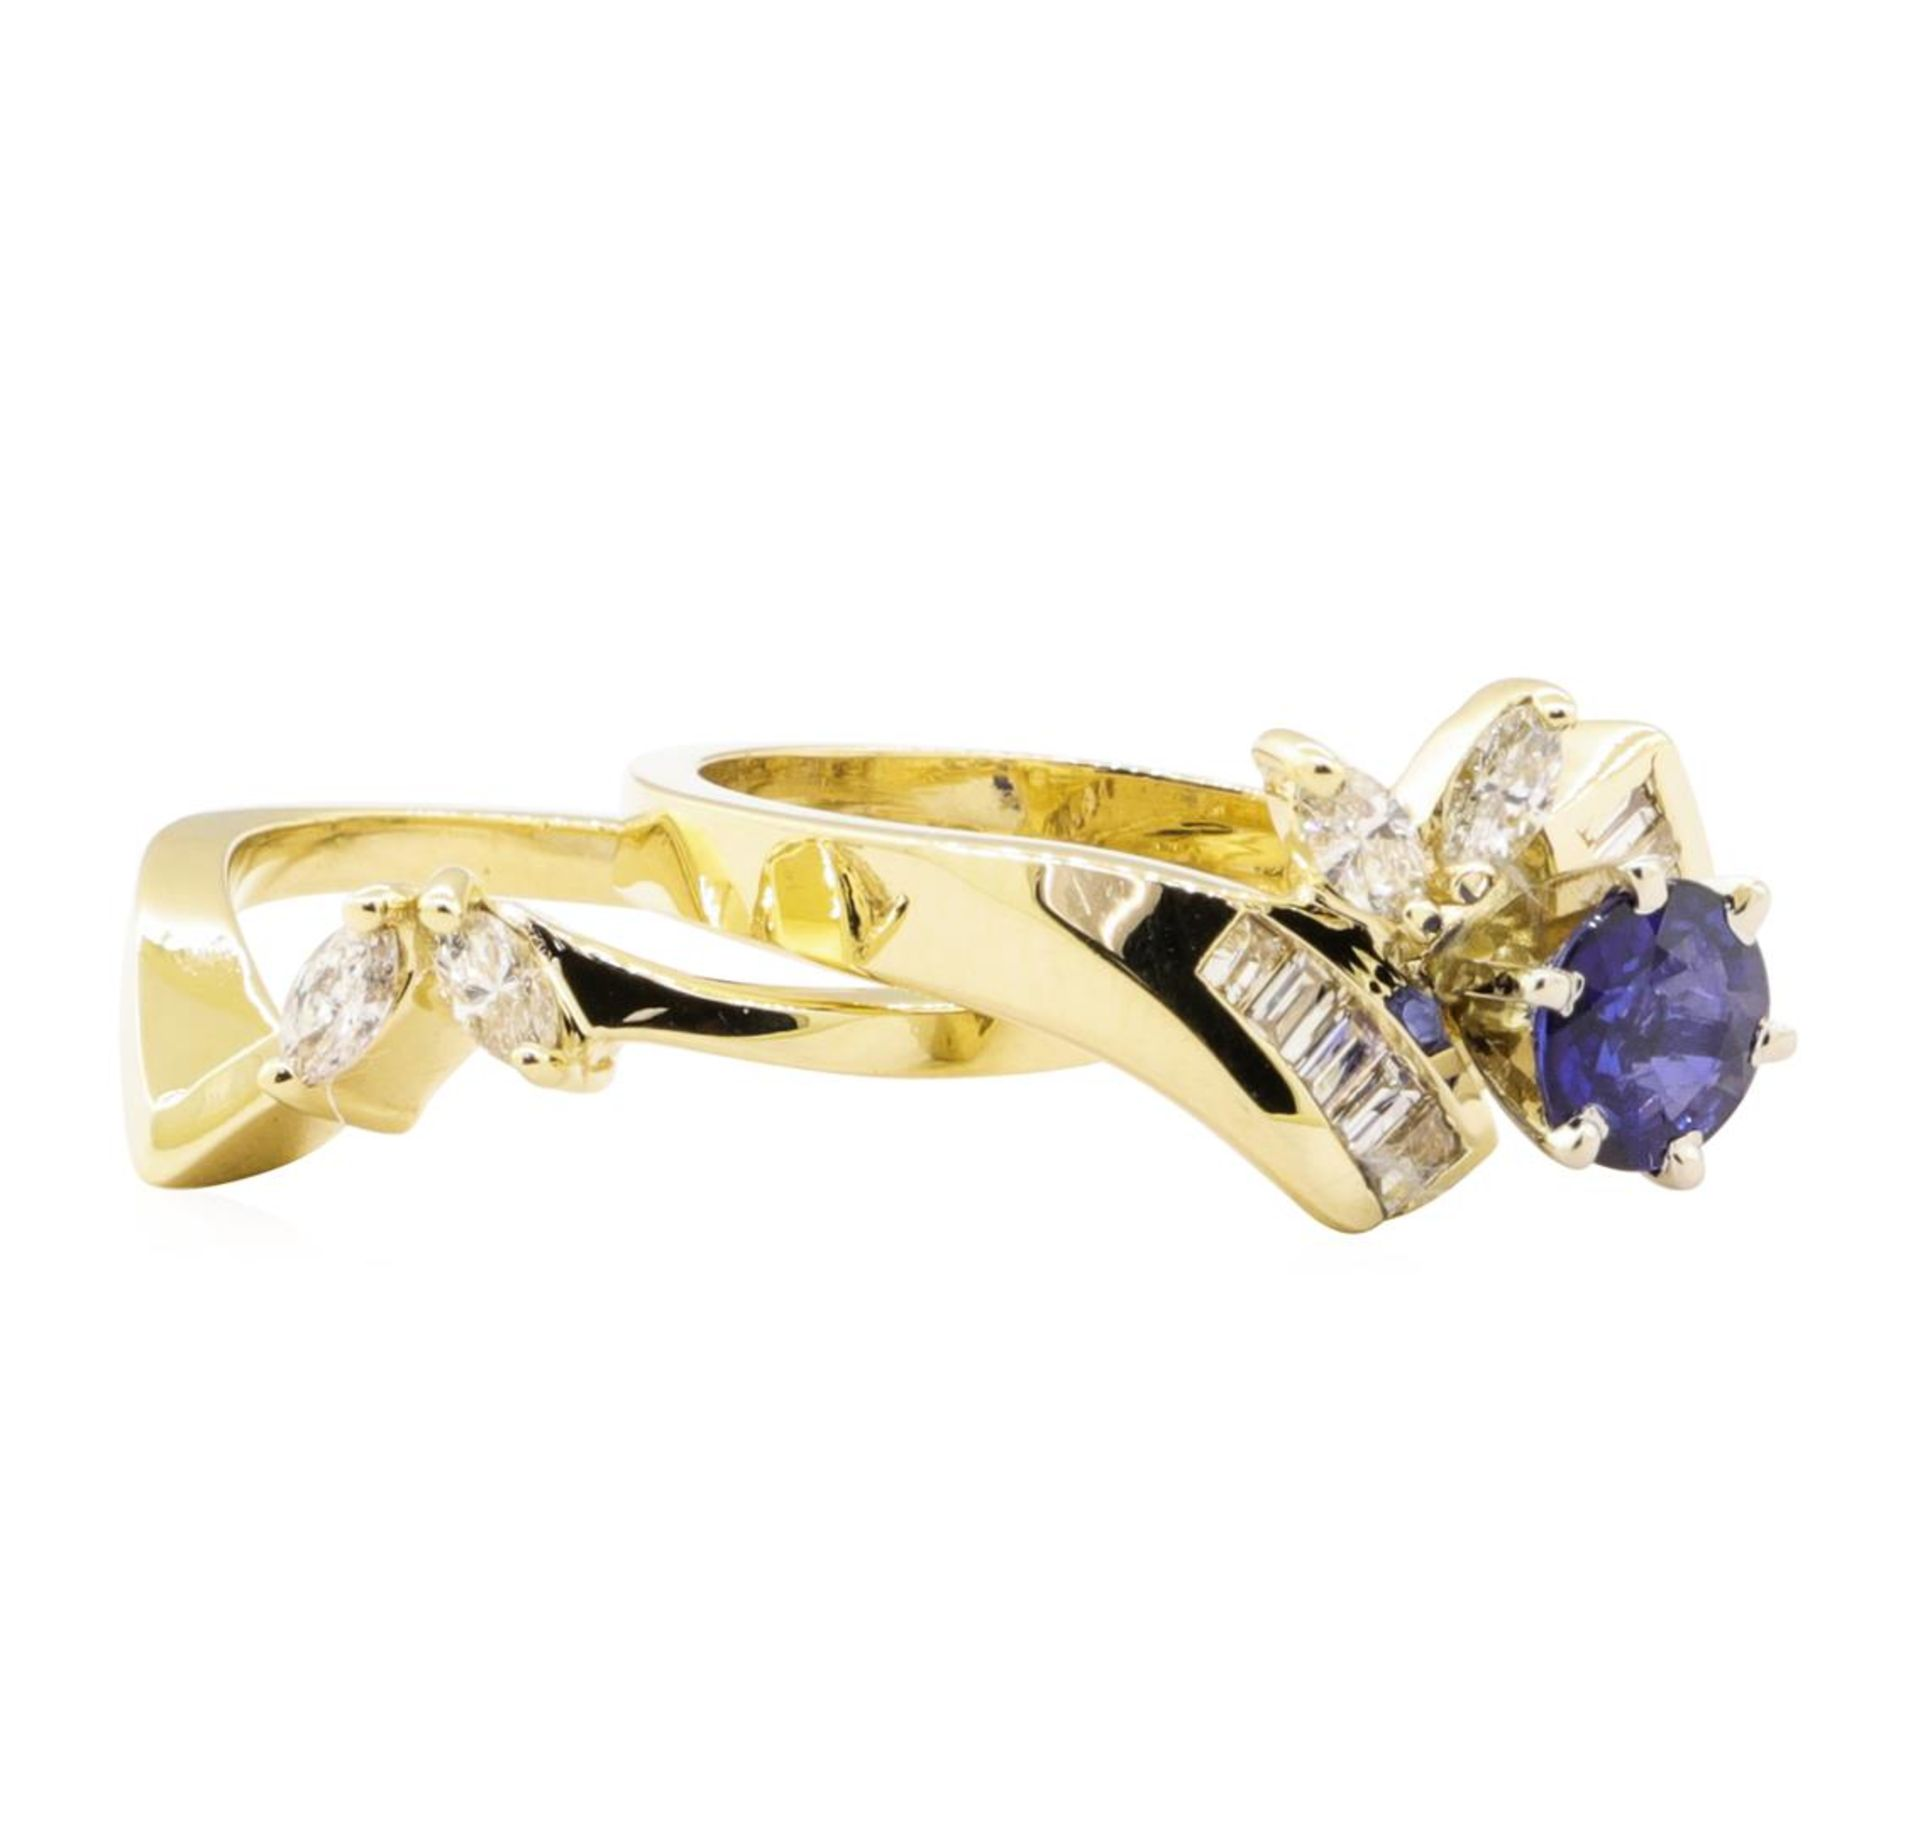 1.24 ctw Blue Sapphire And Diamond Ring And Band - 14KT Yellow Gold - Image 2 of 3